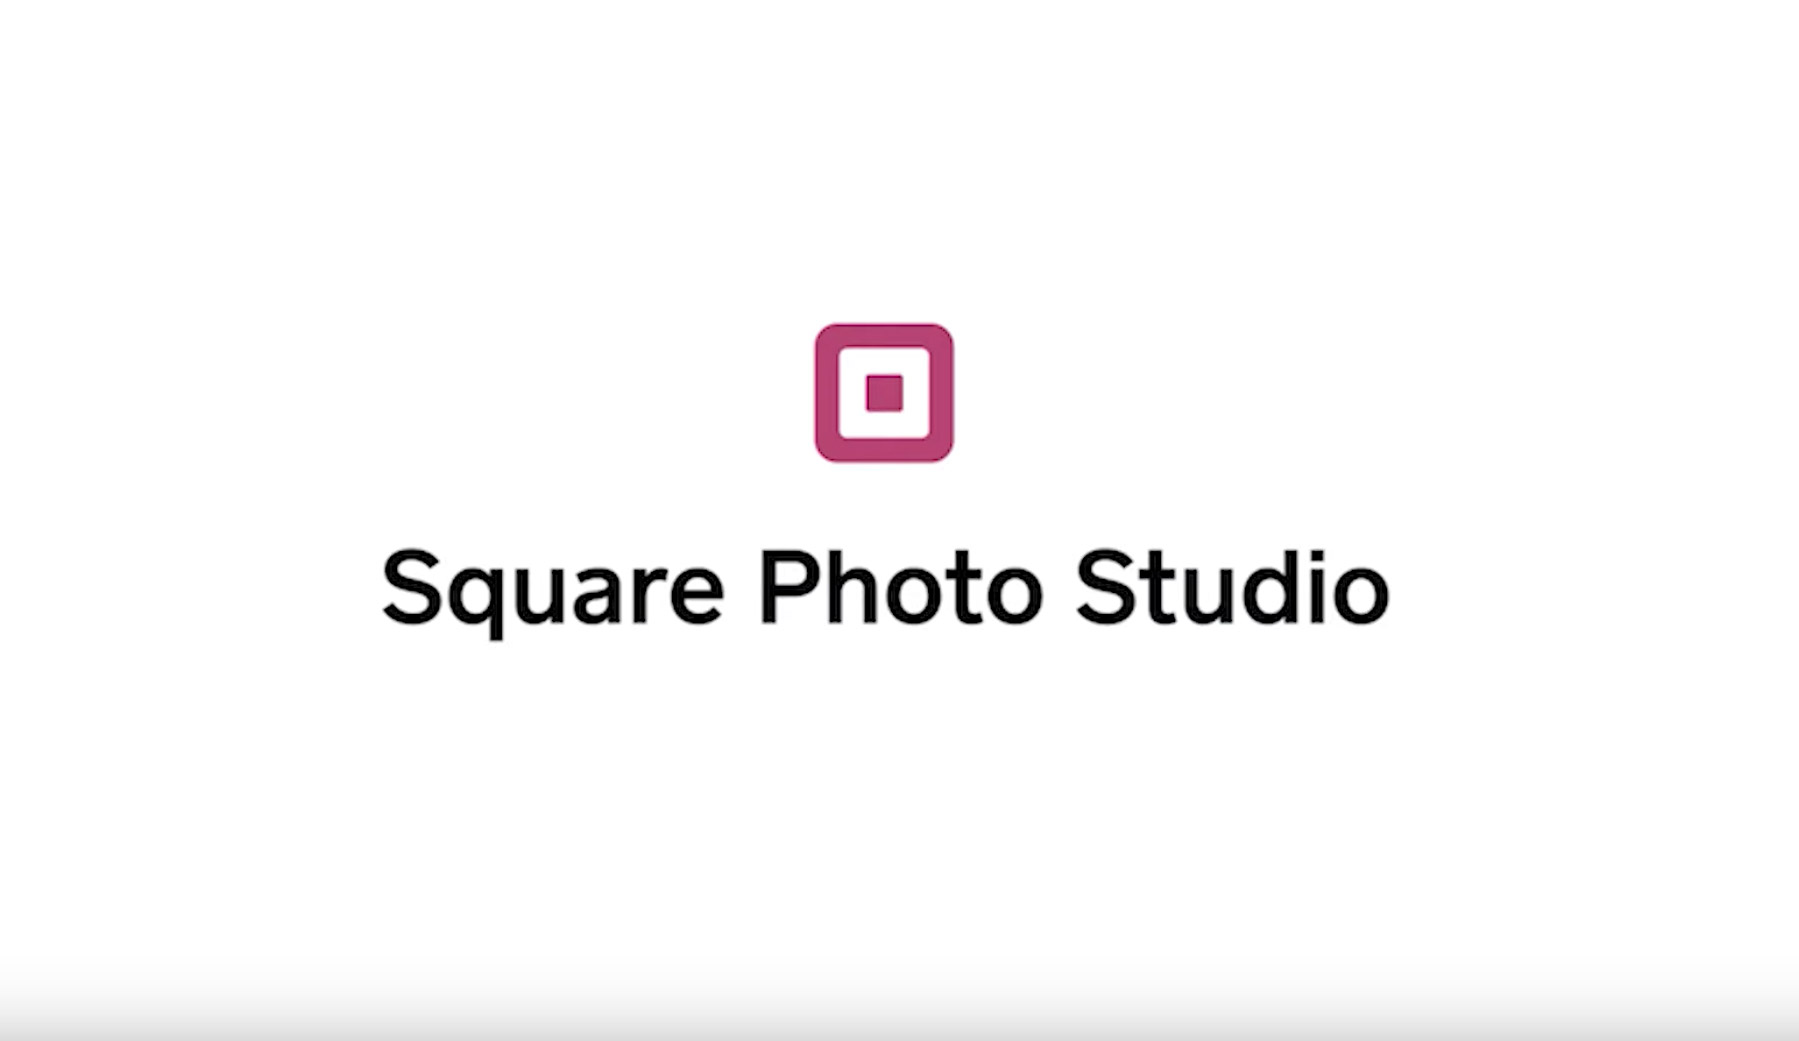 Square Photo Studio